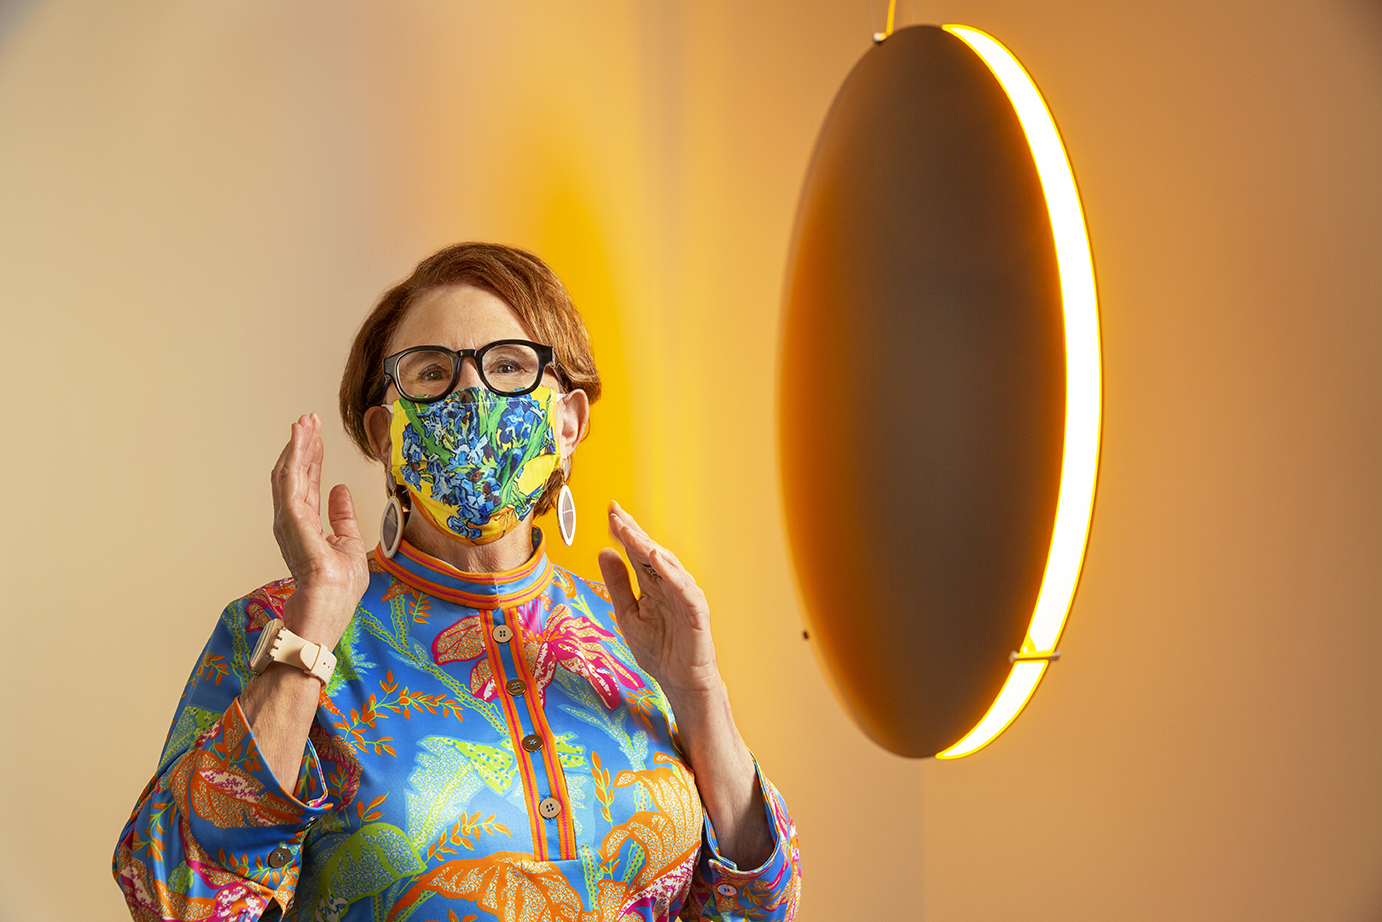 A figure in a vibrant face covering poses next to a light-emitting sculpture in the shape of a black disc